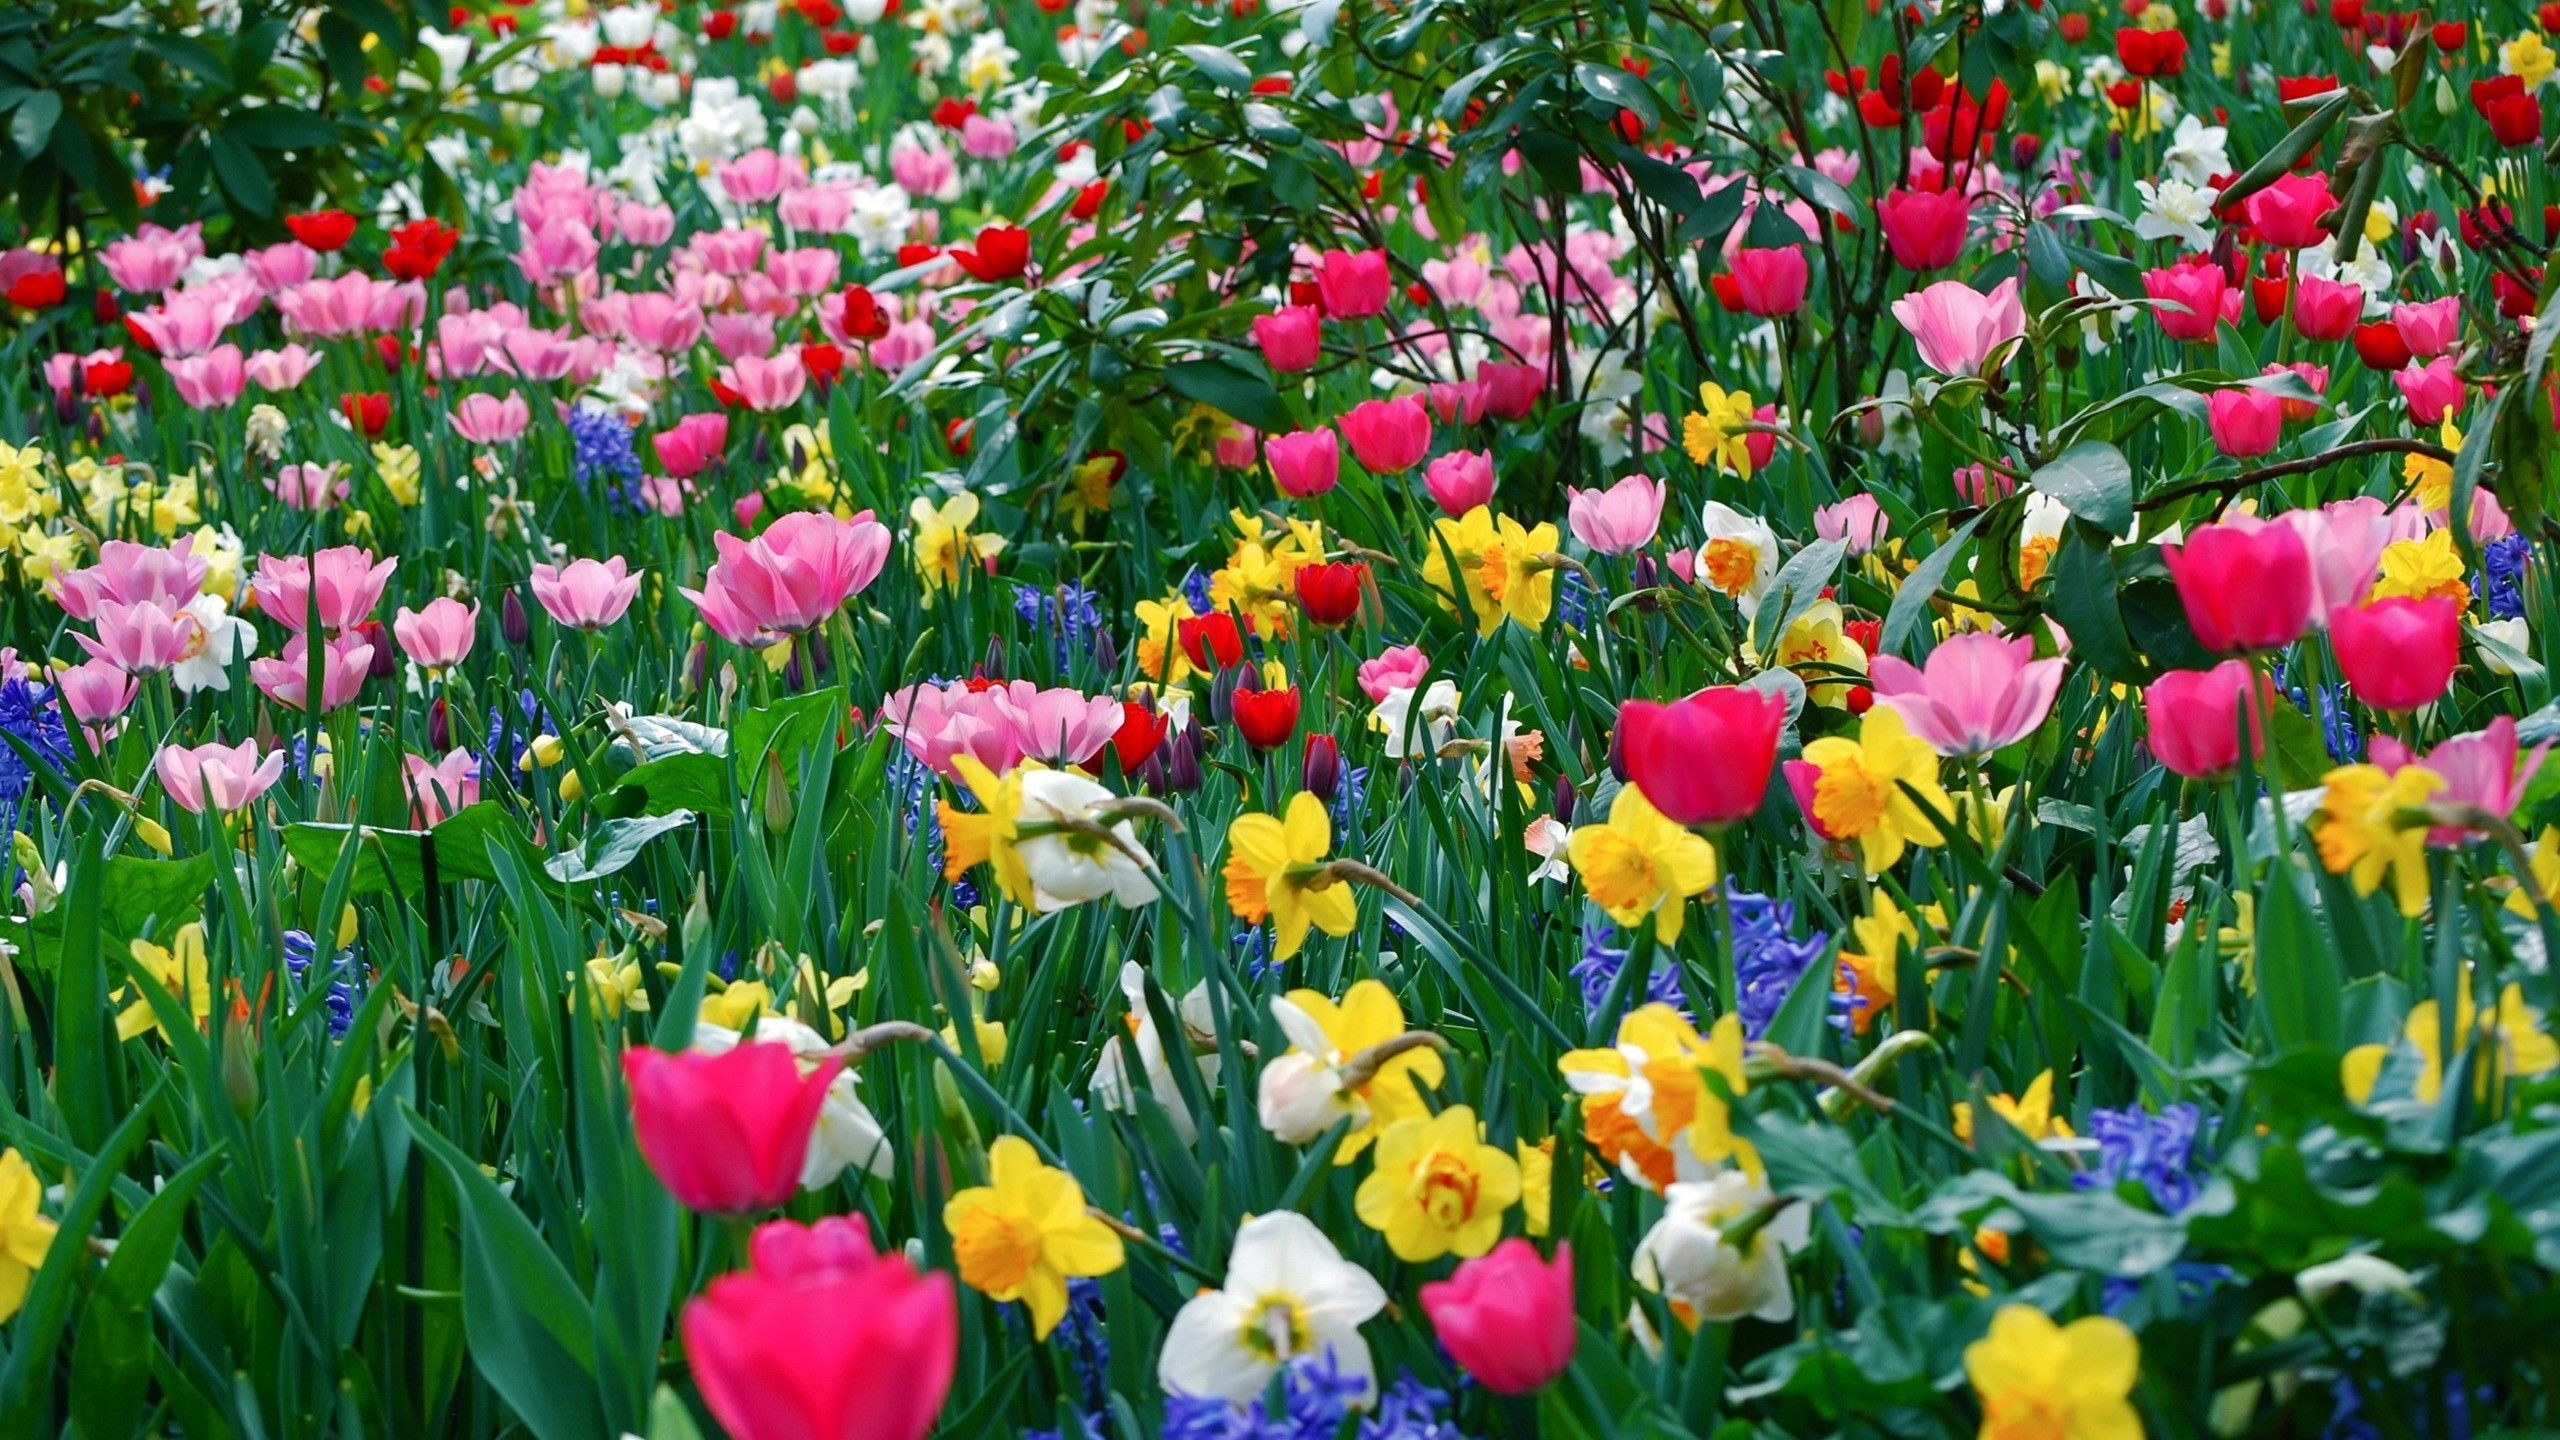 HD Wide_hd wallpapers for pc full screen flower Spring